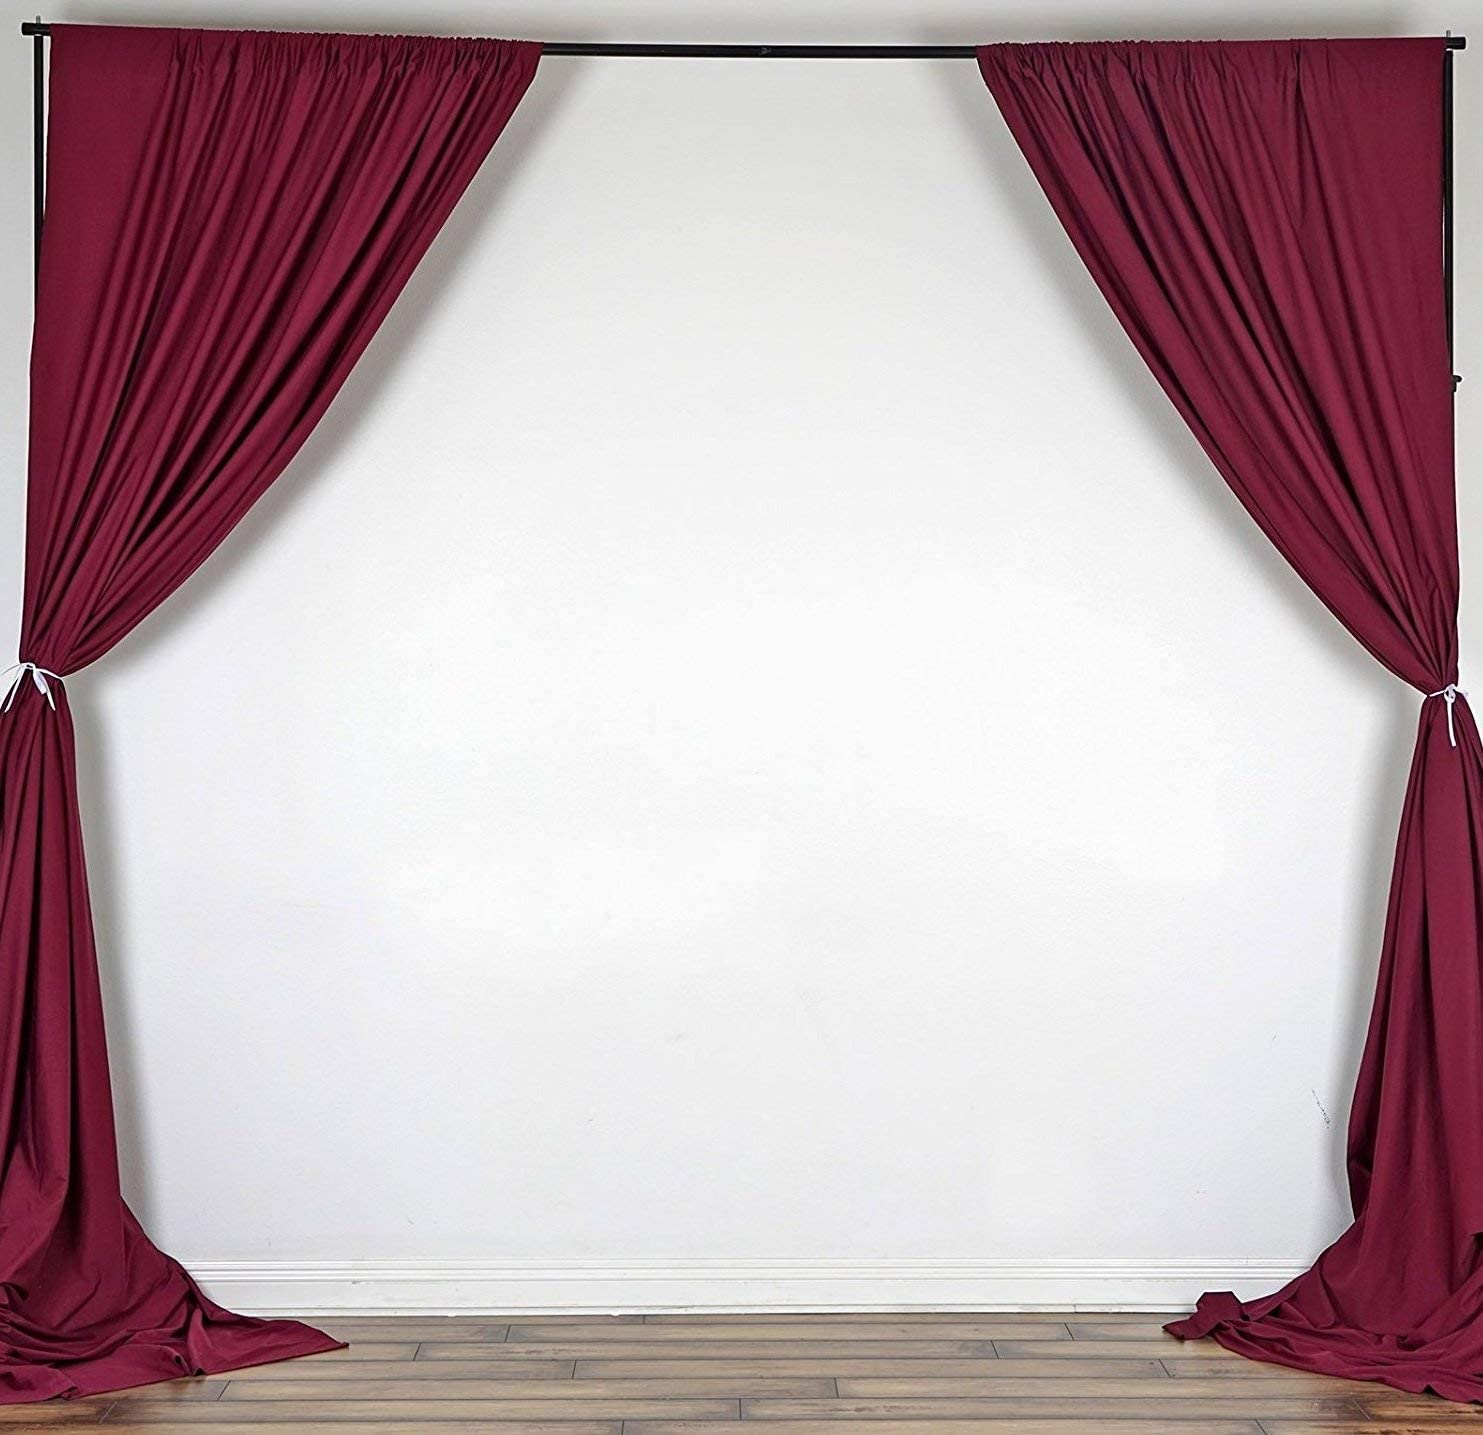 luvfabrics 2 Two Curtains 5 feet Wide x 10 feet high Polyester Backdrop Drapes Curtains Panels – Wedding Ceremony Party Home Window Decorations Burgundy